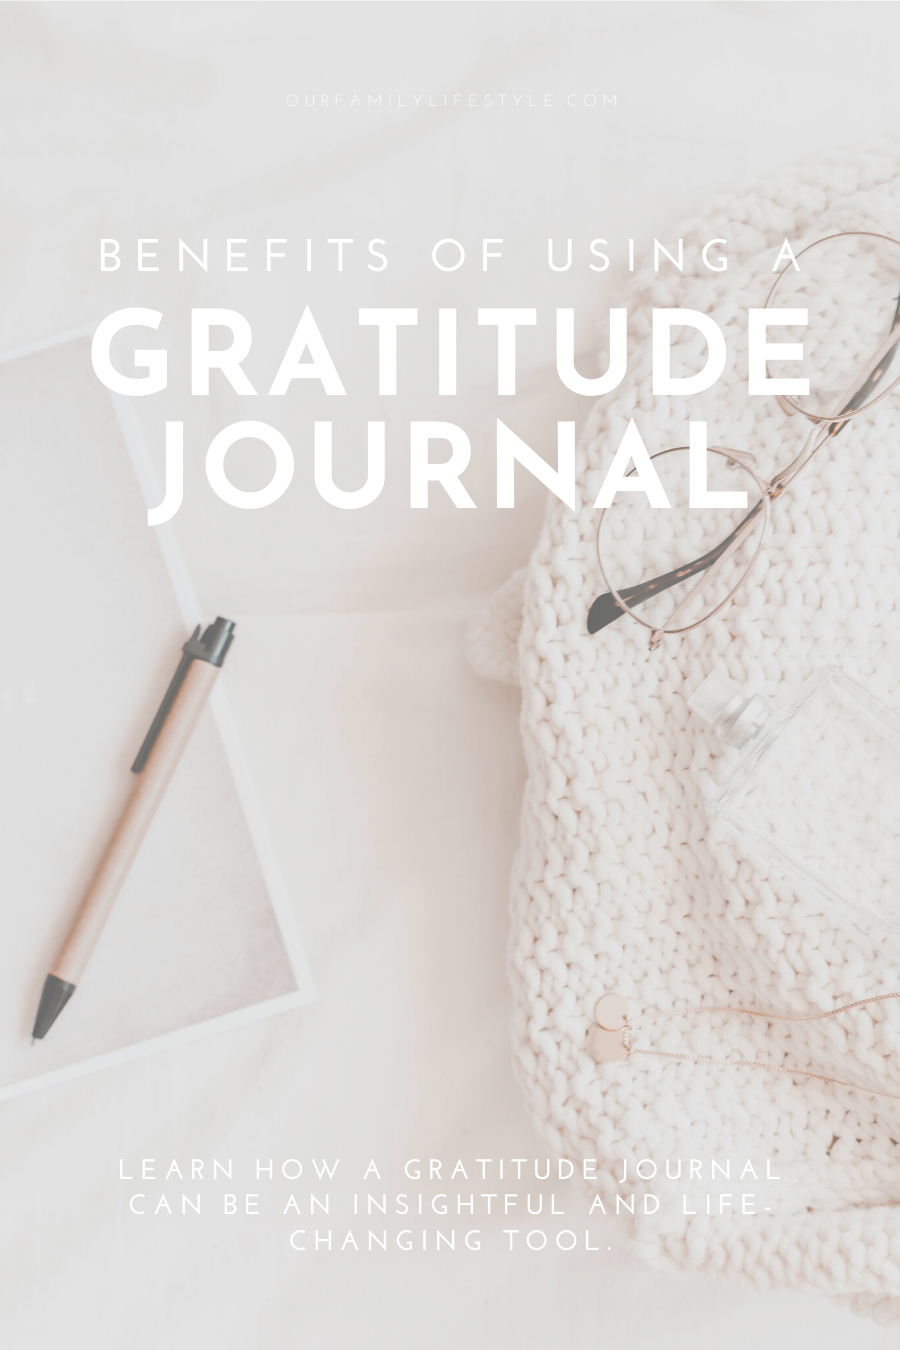 Benefits of a Gratitude Journal